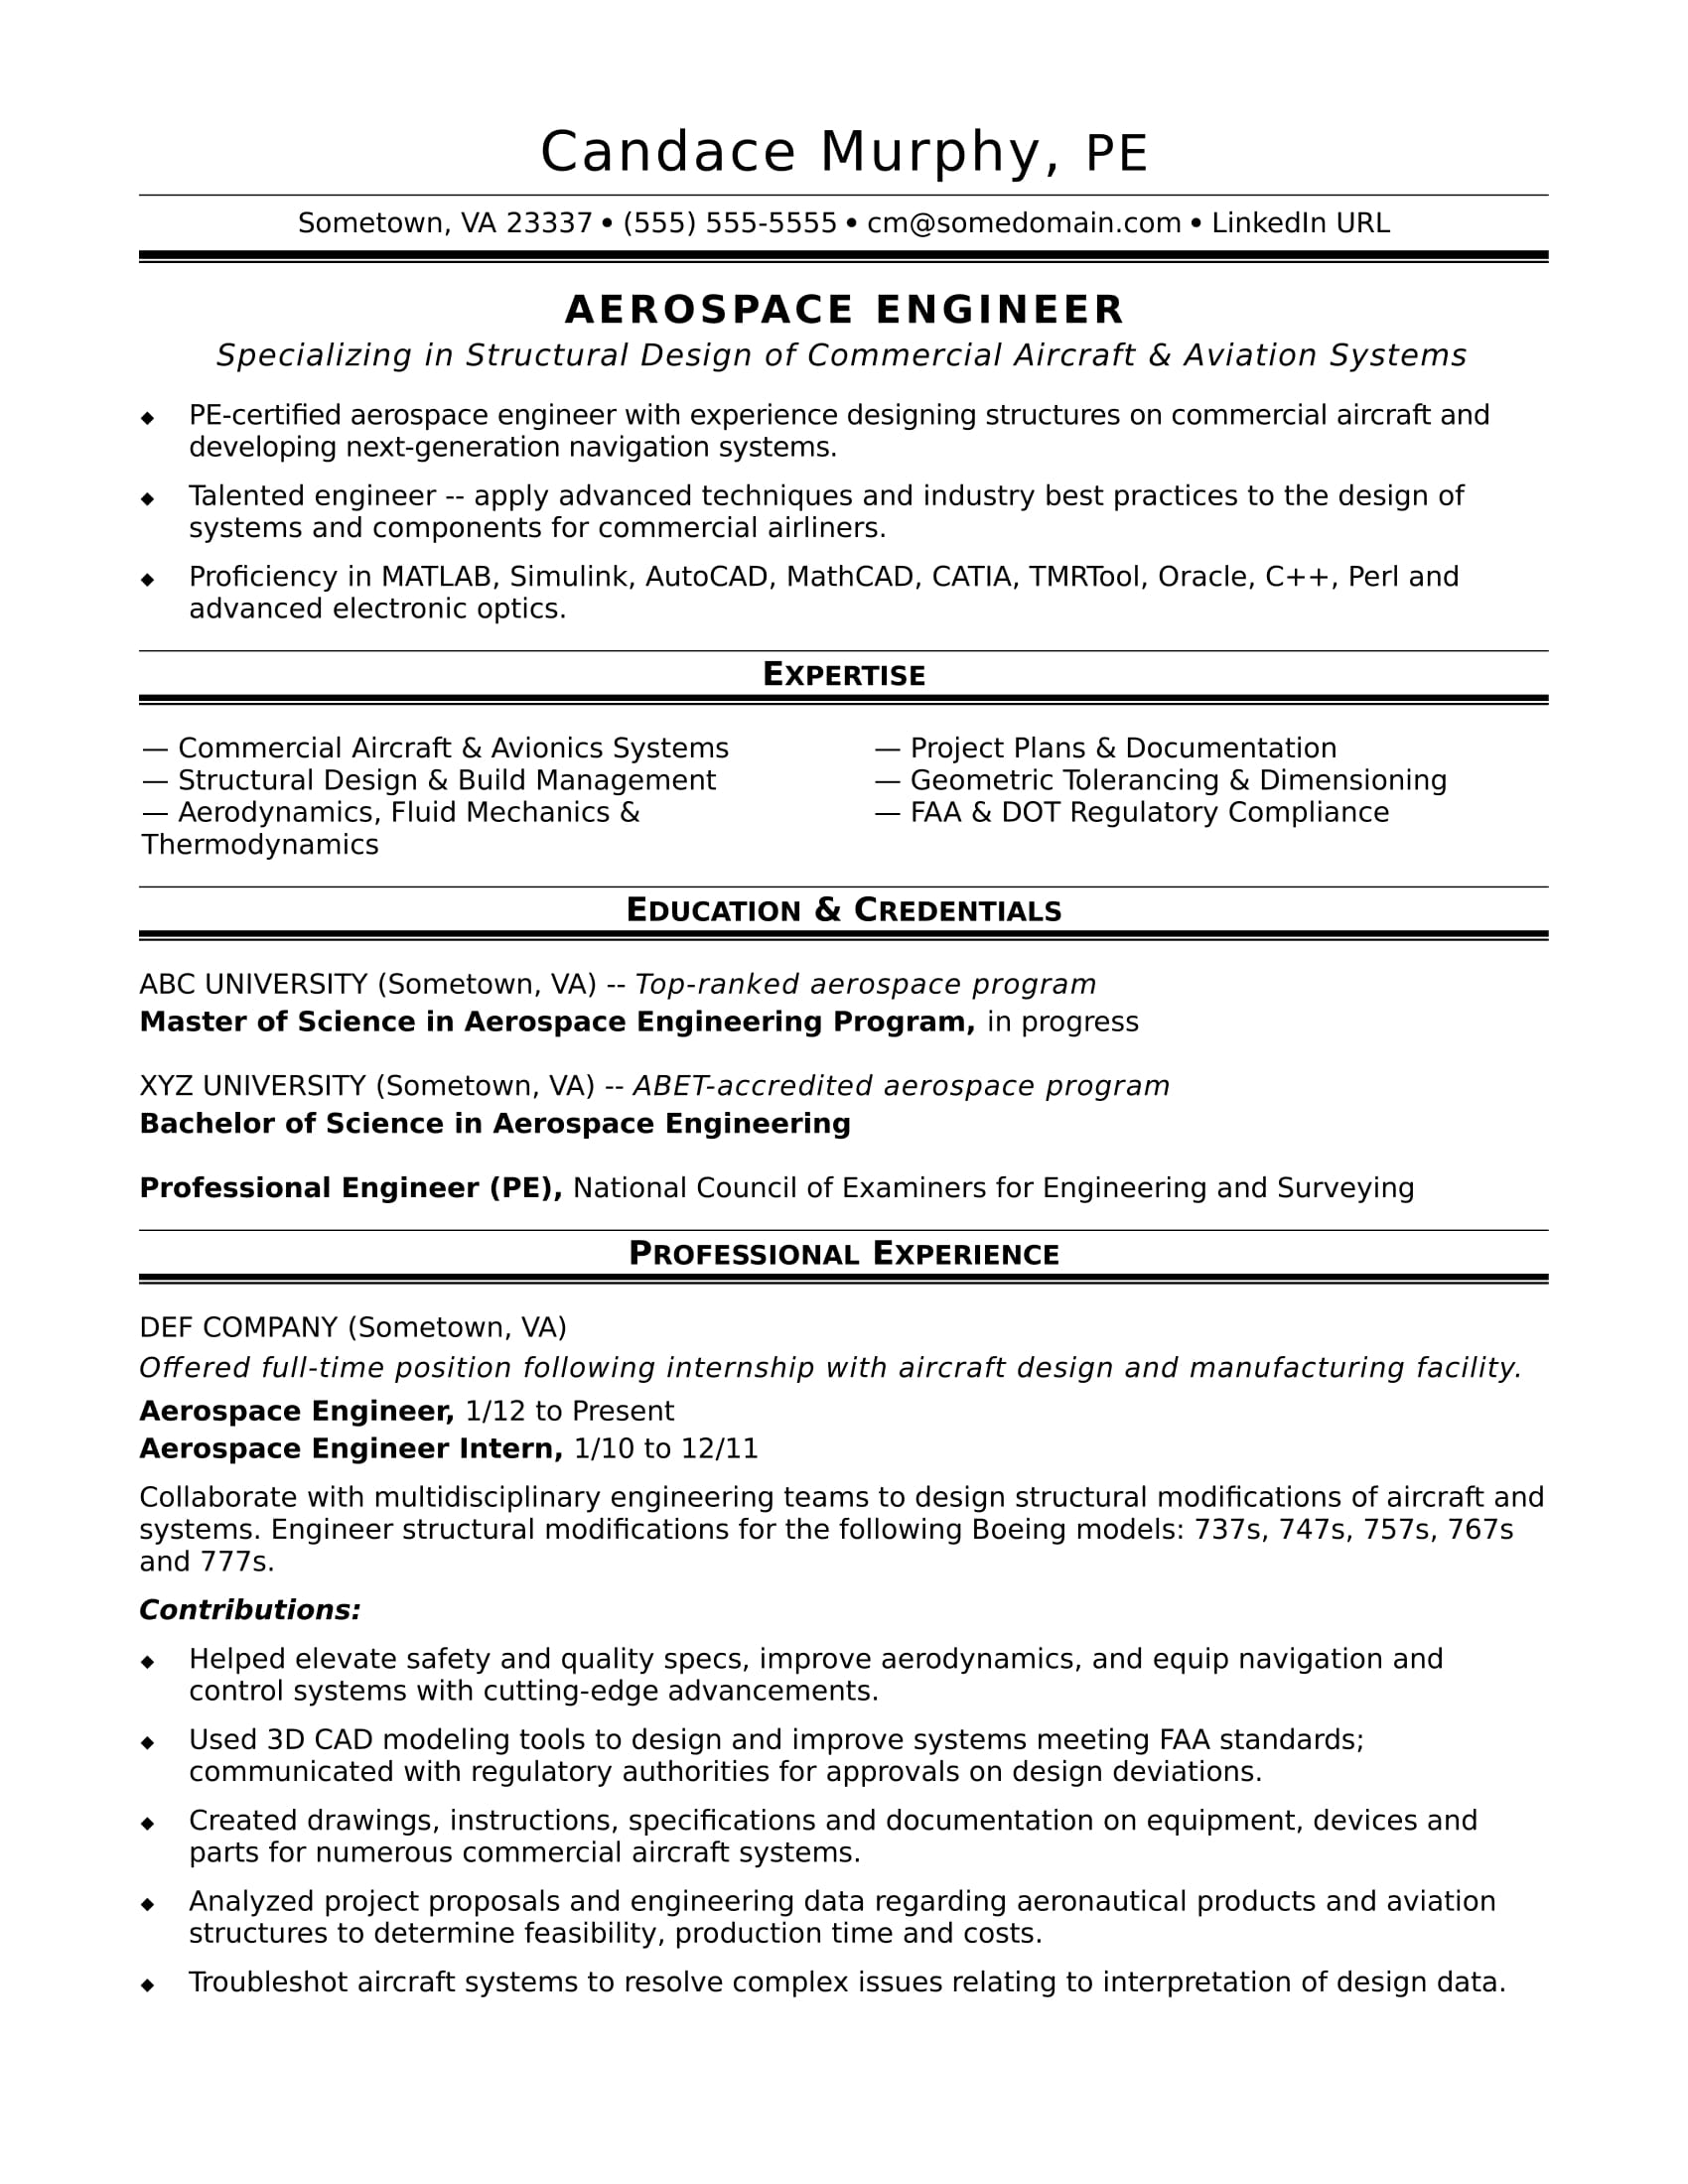 Sample Resume For A Midlevel Aerospace Engineer  Professional Engineer Resume